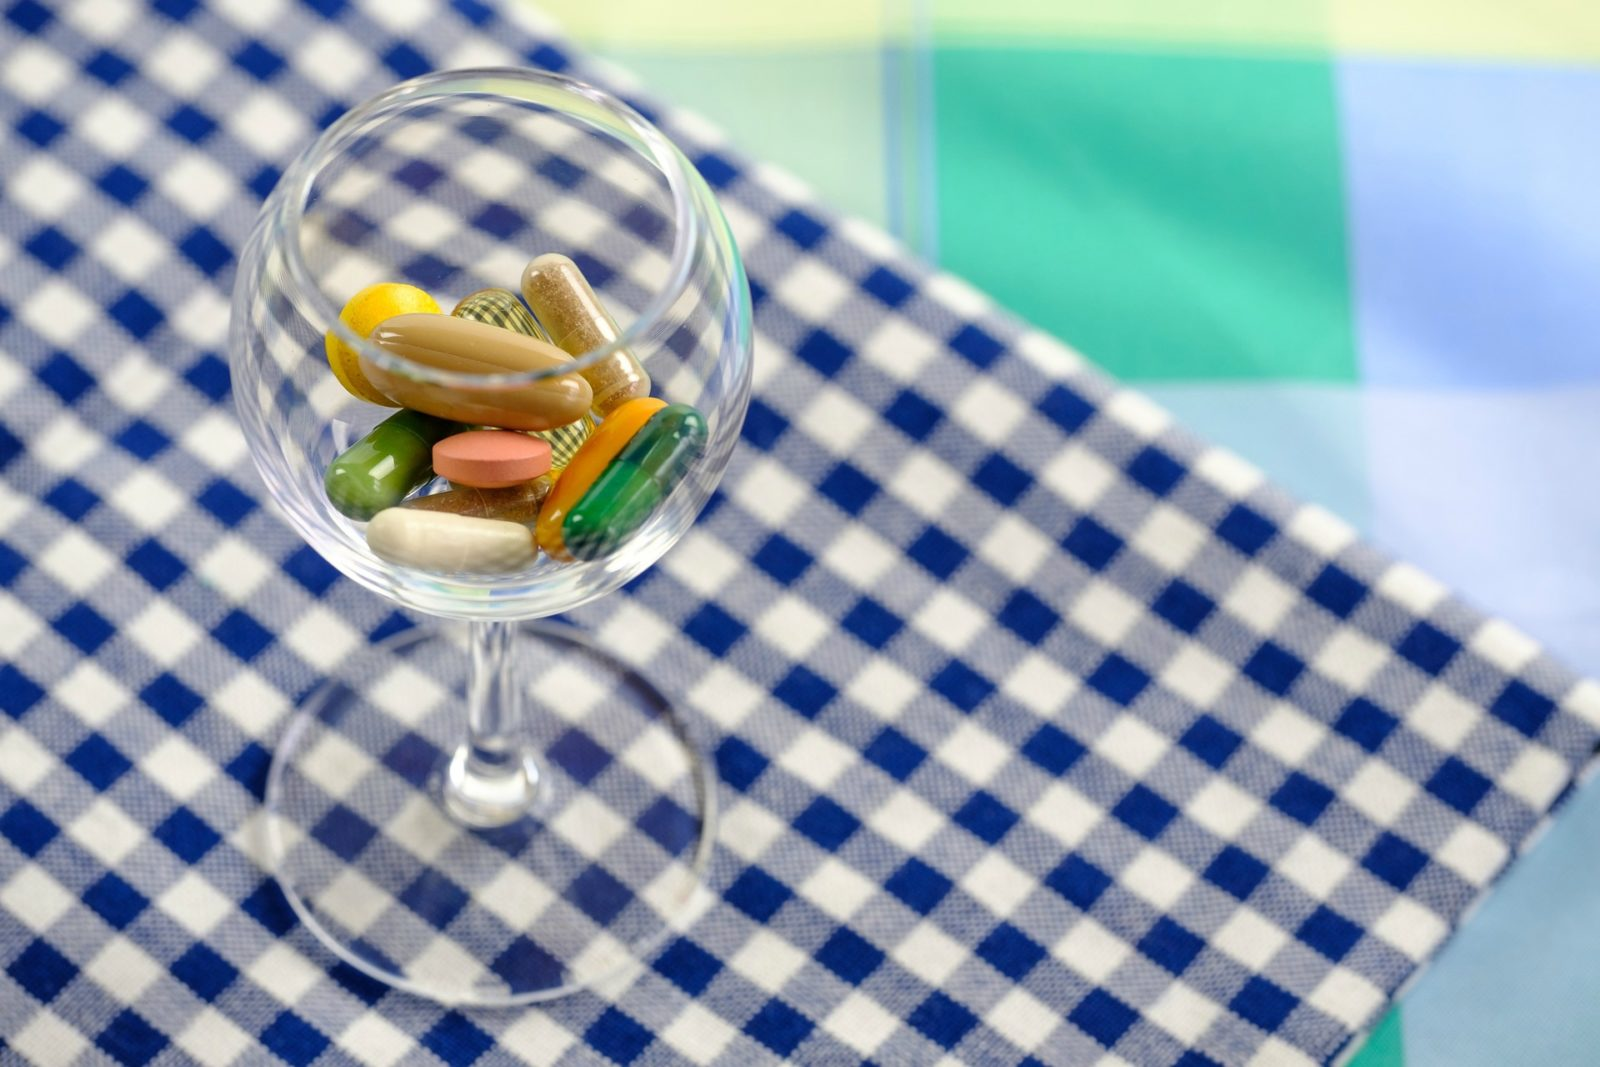 There's a lot to consider when taking supplements.